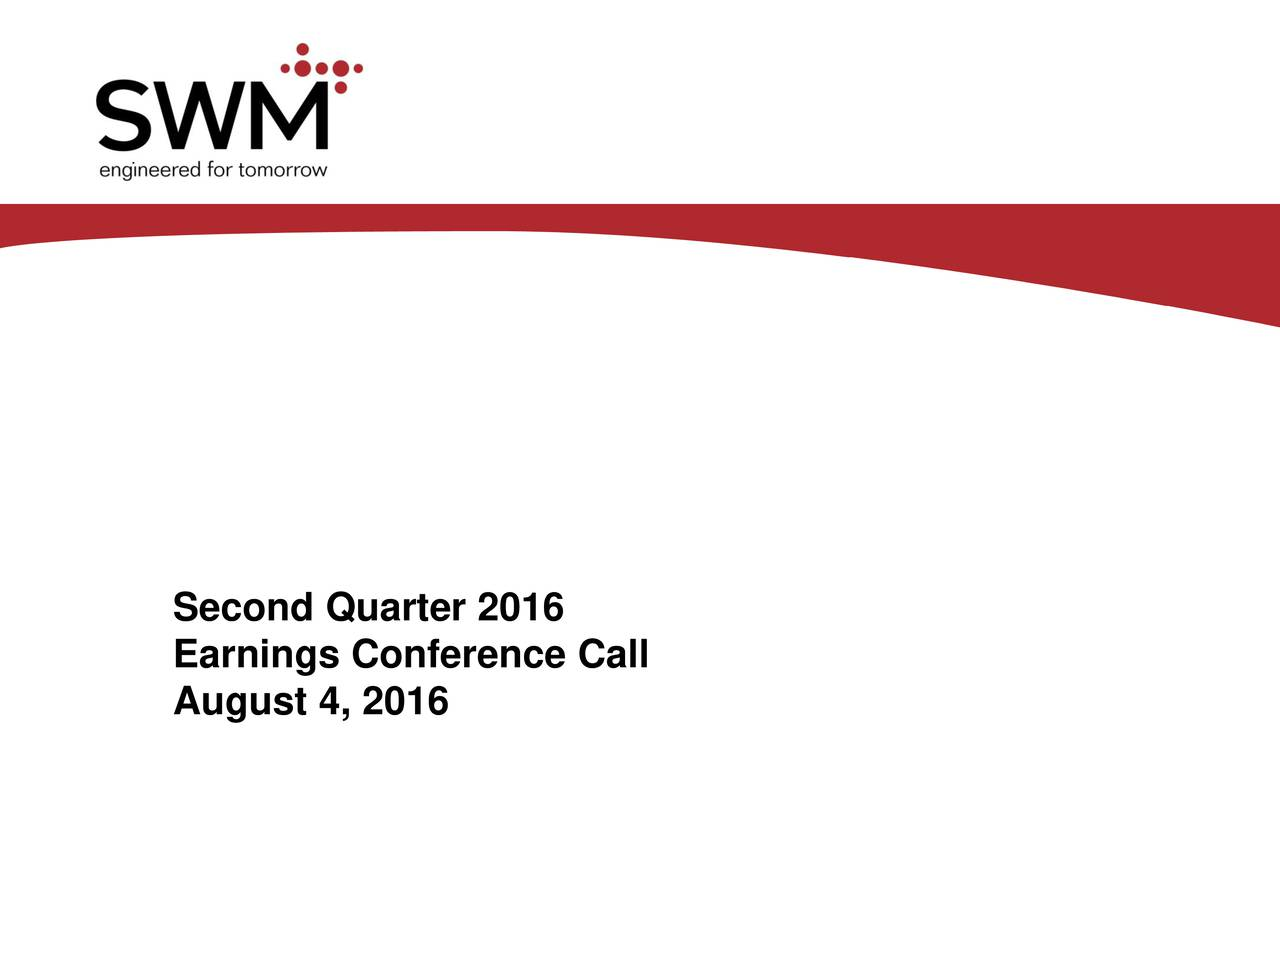 Earnings Conference Call August 4, 2016